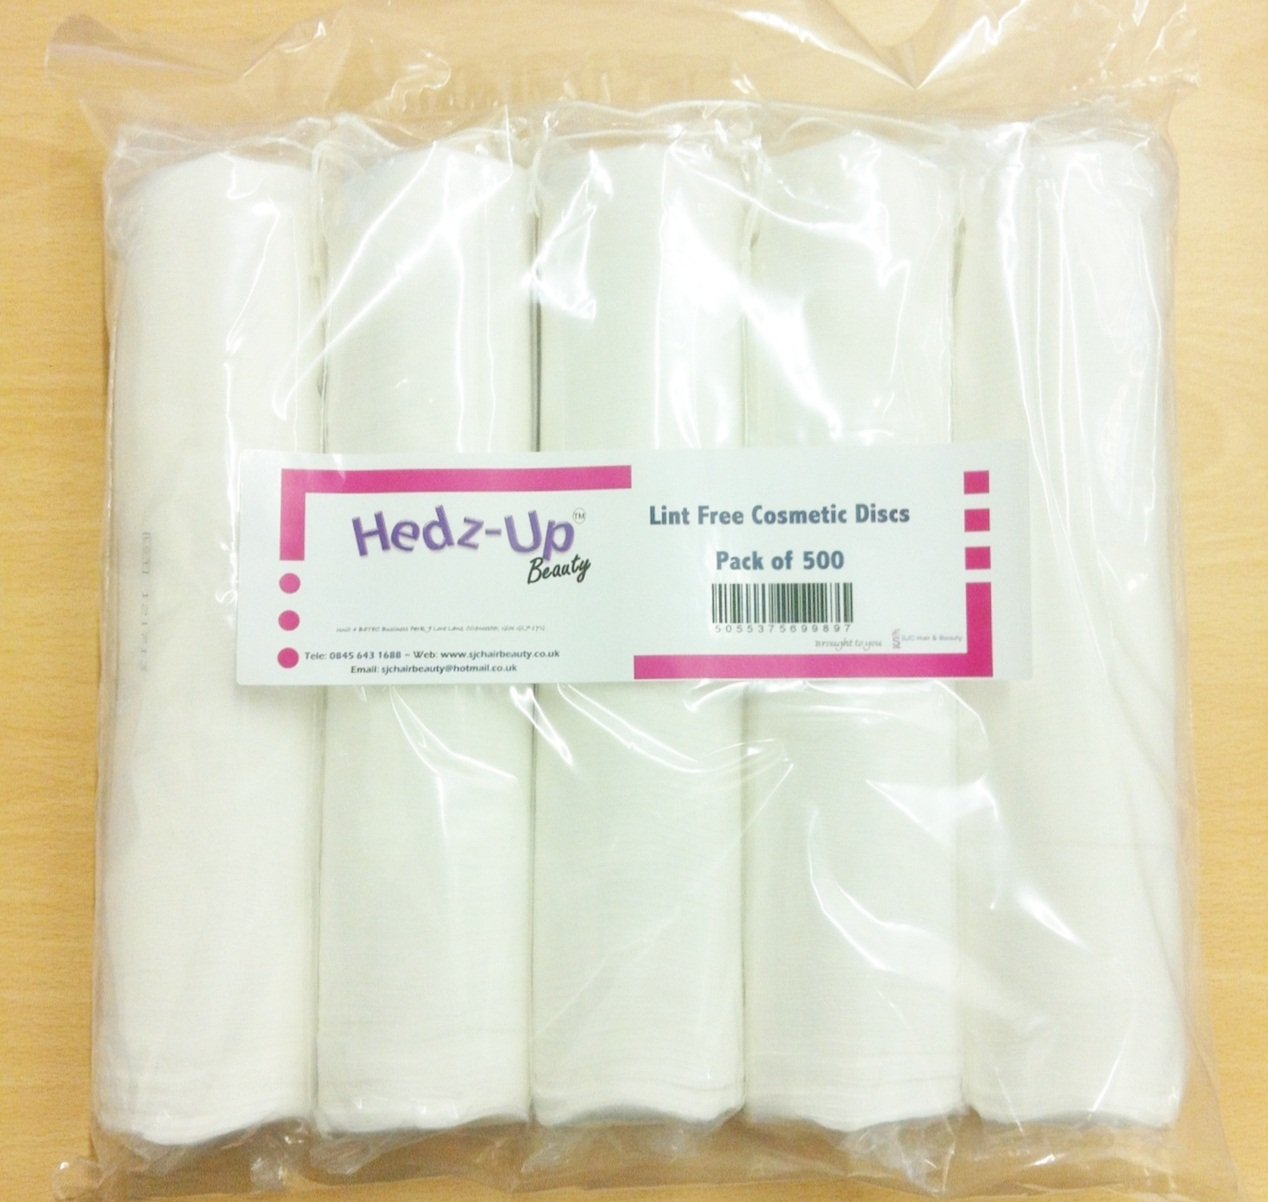 Hedz-UpTM Cosmetic Face & Nail Lint Free Cotton Wool Discs/ Pads x 500 by Hedz-Up SJC-50001